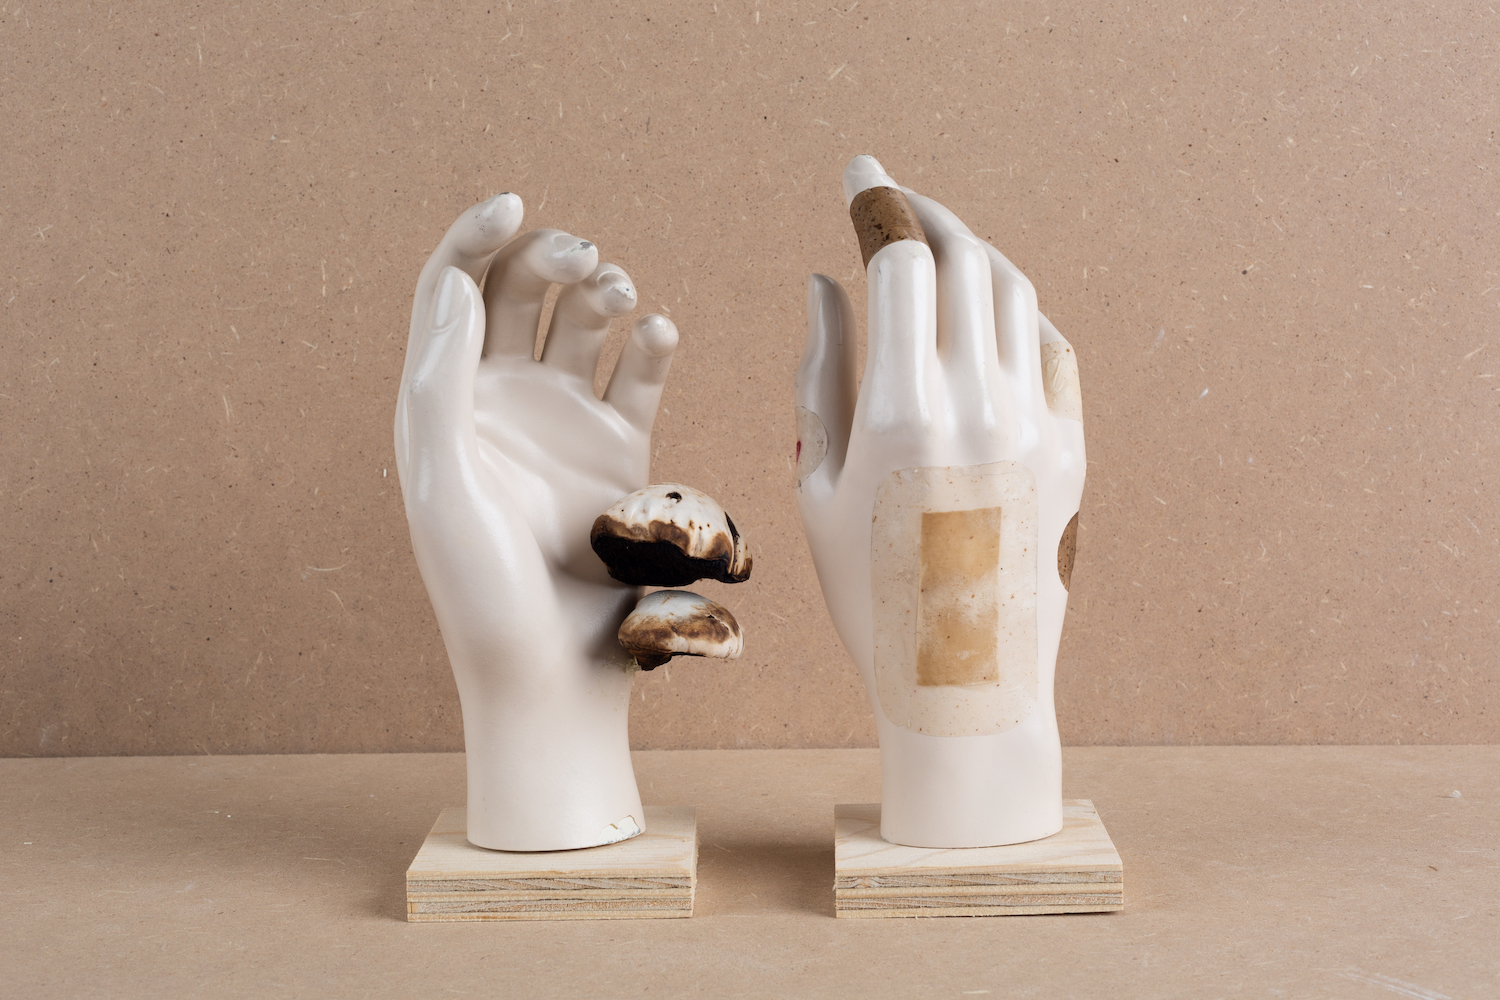 Fake white hands with biomaterial bangades